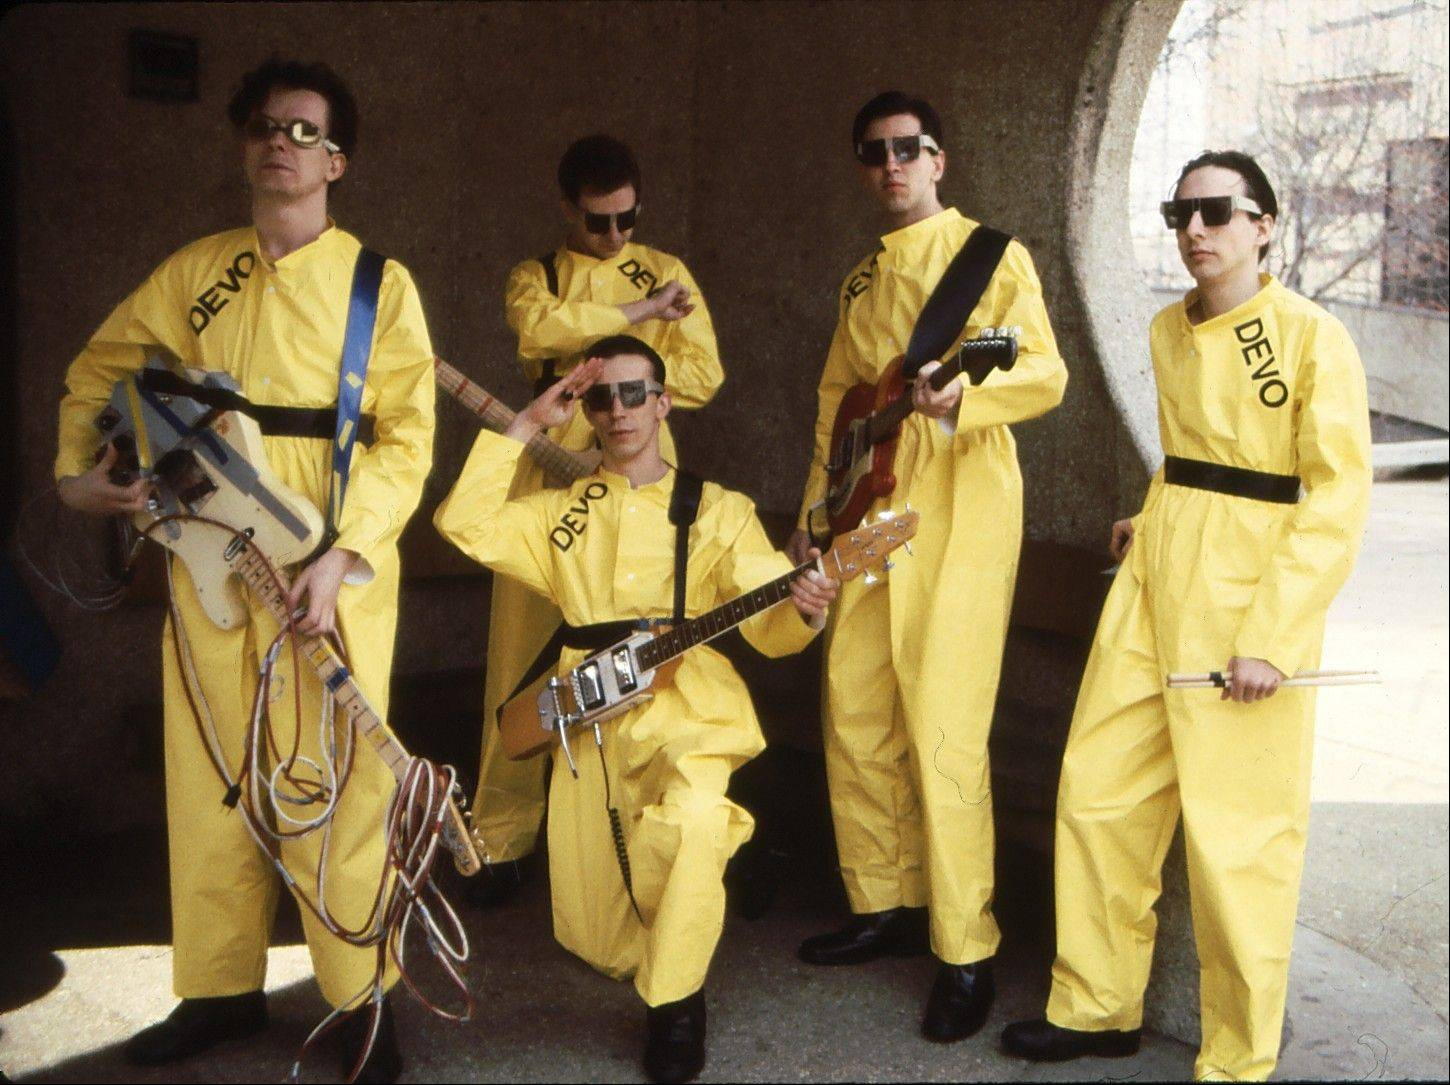 The band Devo (in 1978) -- Mark Mothersbaugh, left, Bob Mothersbaugh, kneeling, Jerry Casale, Bob Casale and Alan Myers. Drummer Alan Myers died Monday after a battle with brain cancer. He was 58.